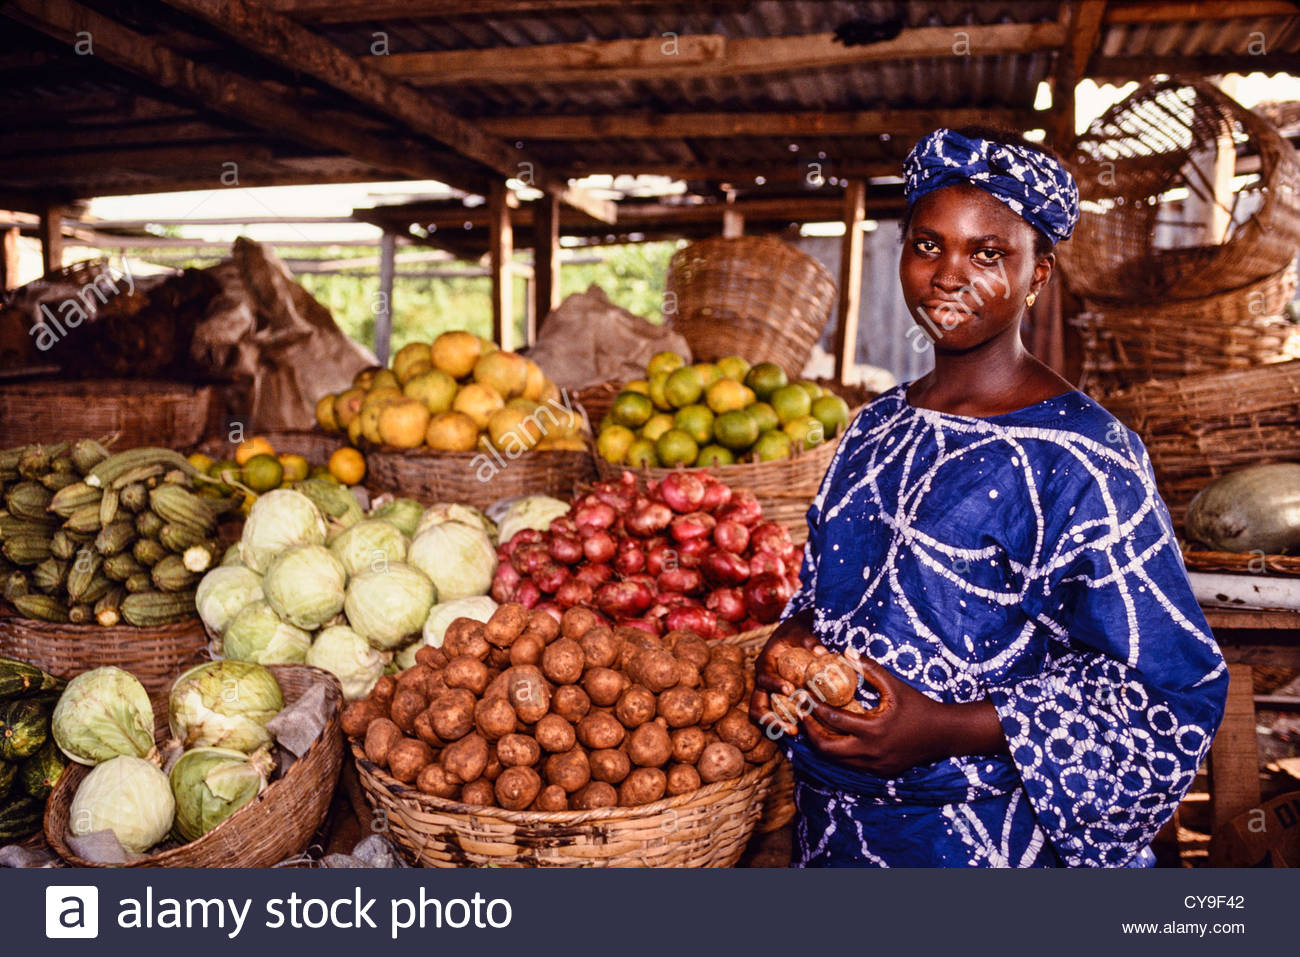 A Nigerian woman sells vegetables at an open air market near Lagos, Nigeria. - Stock Image